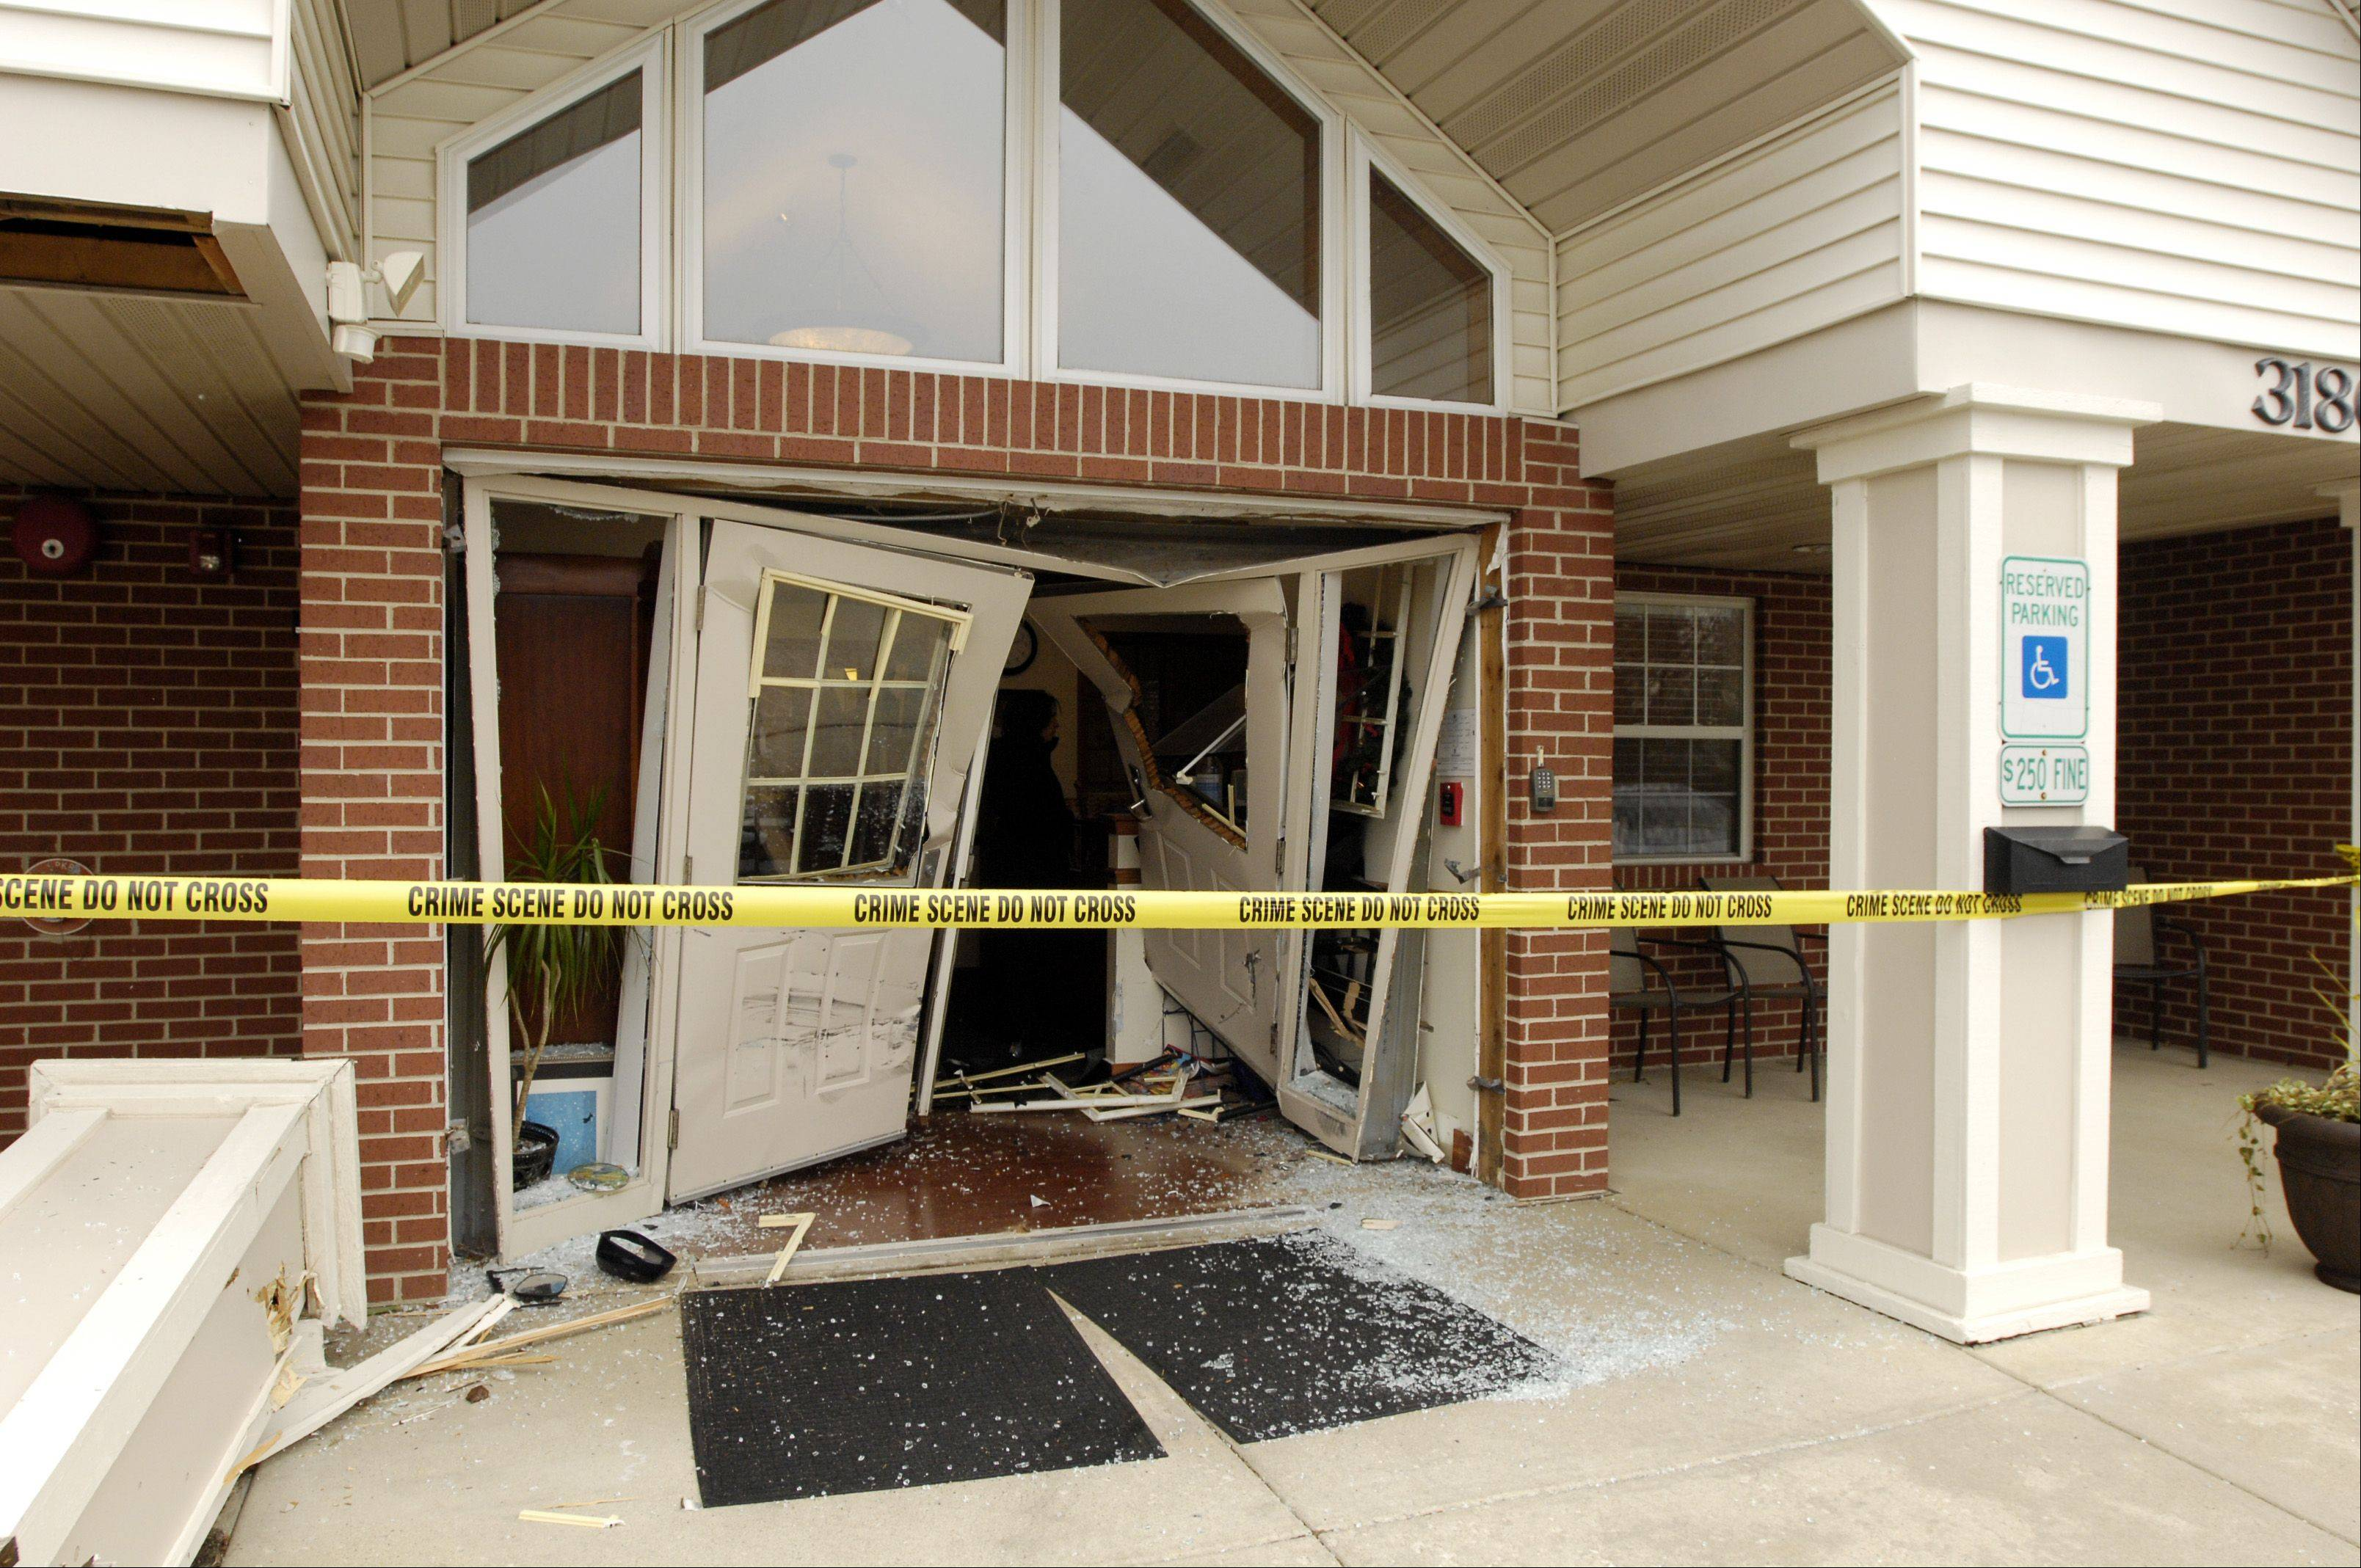 No injuries were reported Tuesday morning when a mom bringing her child to the Aurora Montessori School in the 3100 block of North Aurora Road accidentally crashed her Honda through the building's front doors.